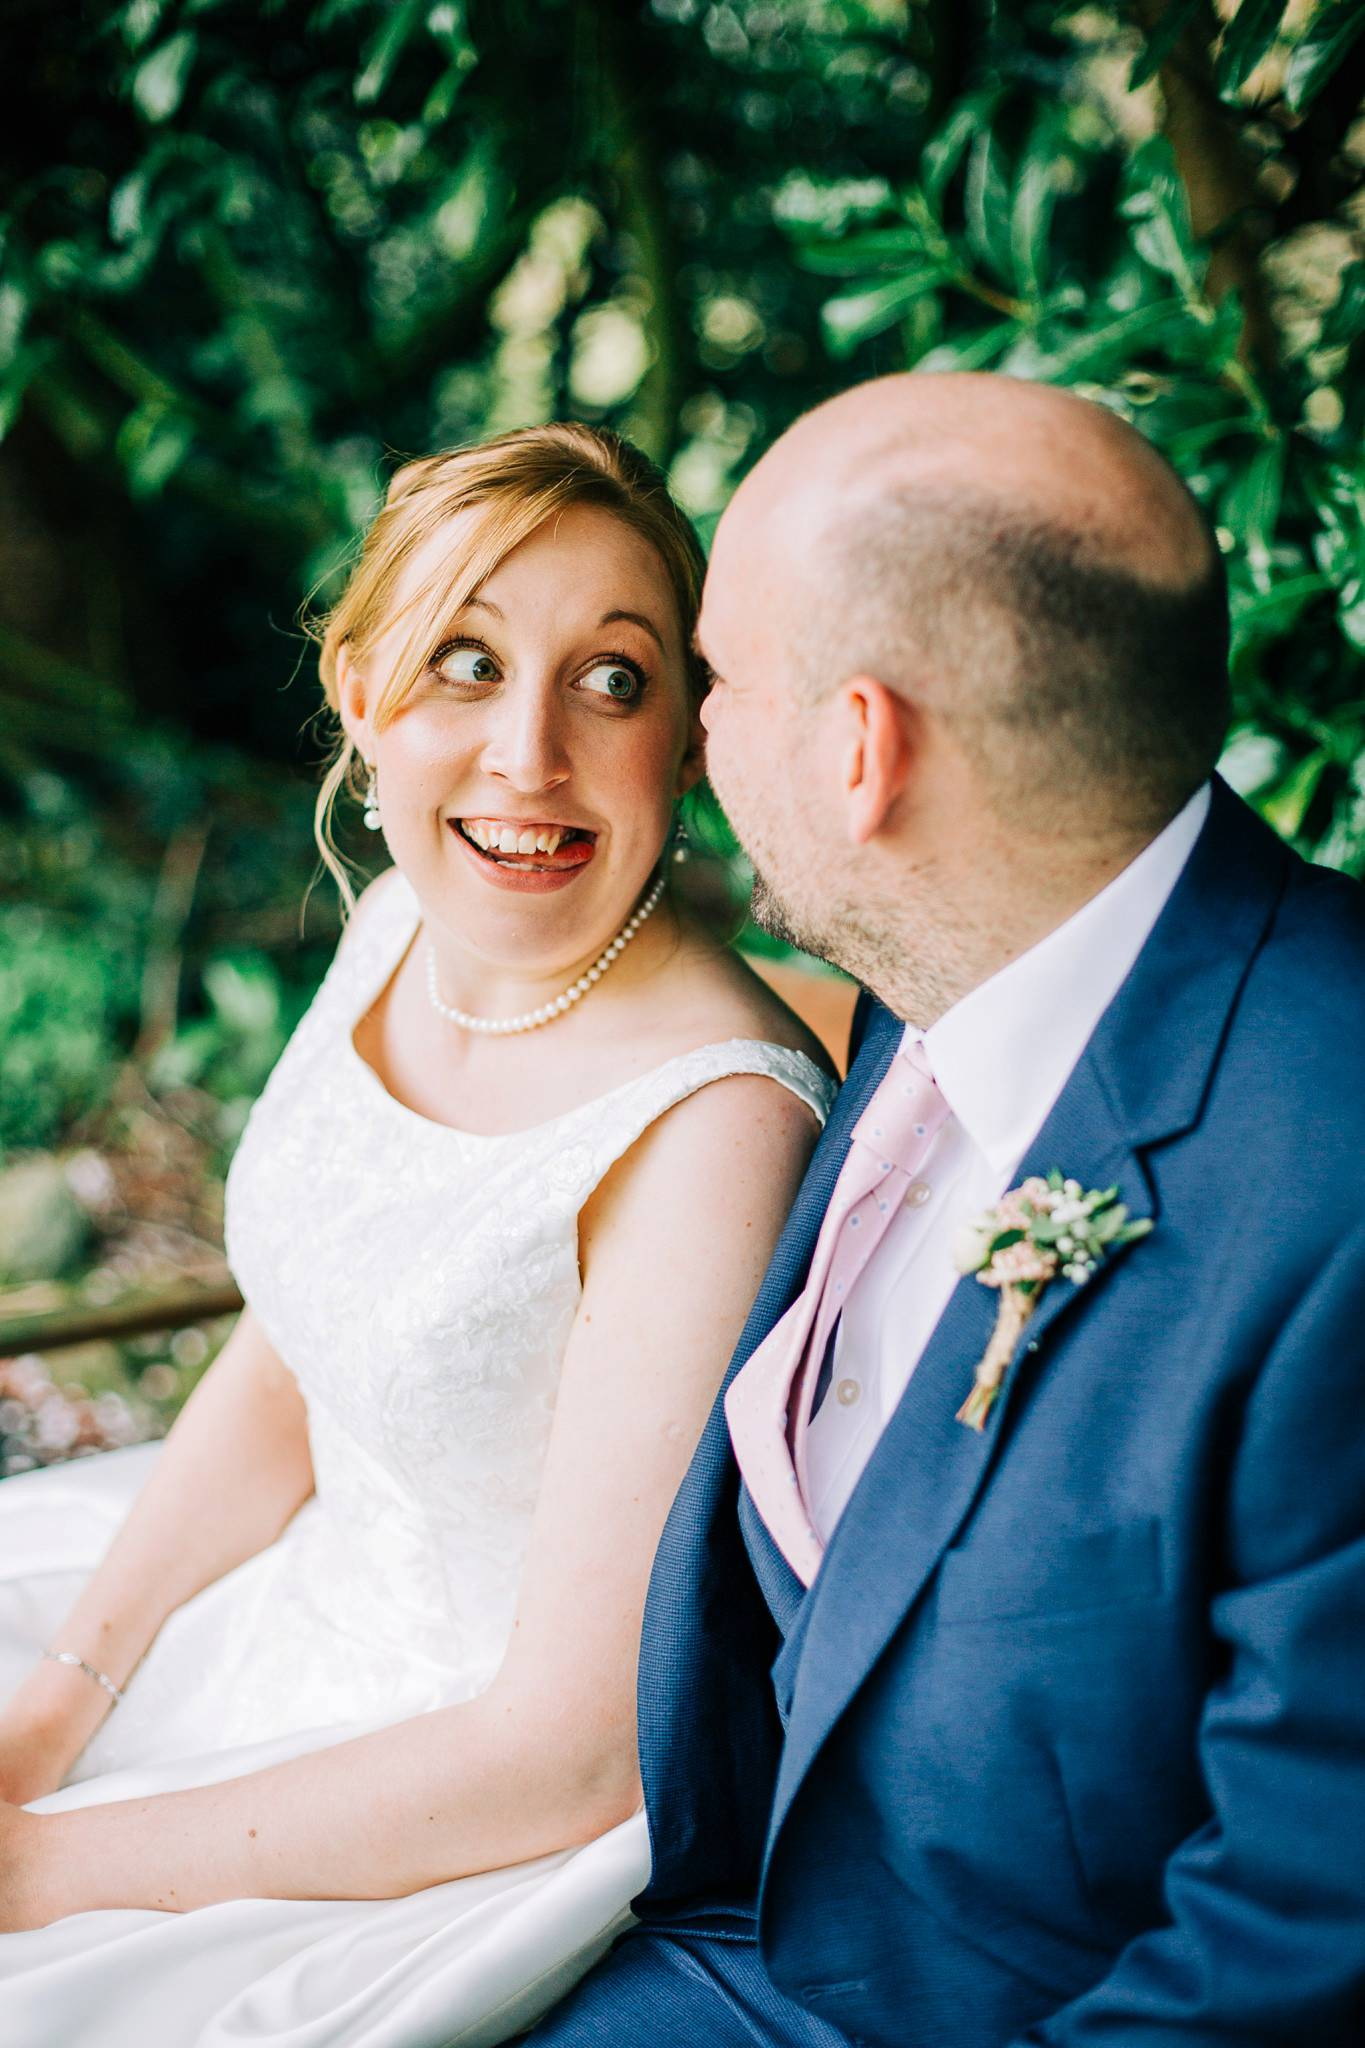 Natural wedding photography Manchester - Clare Robinson Photography_0017.jpg